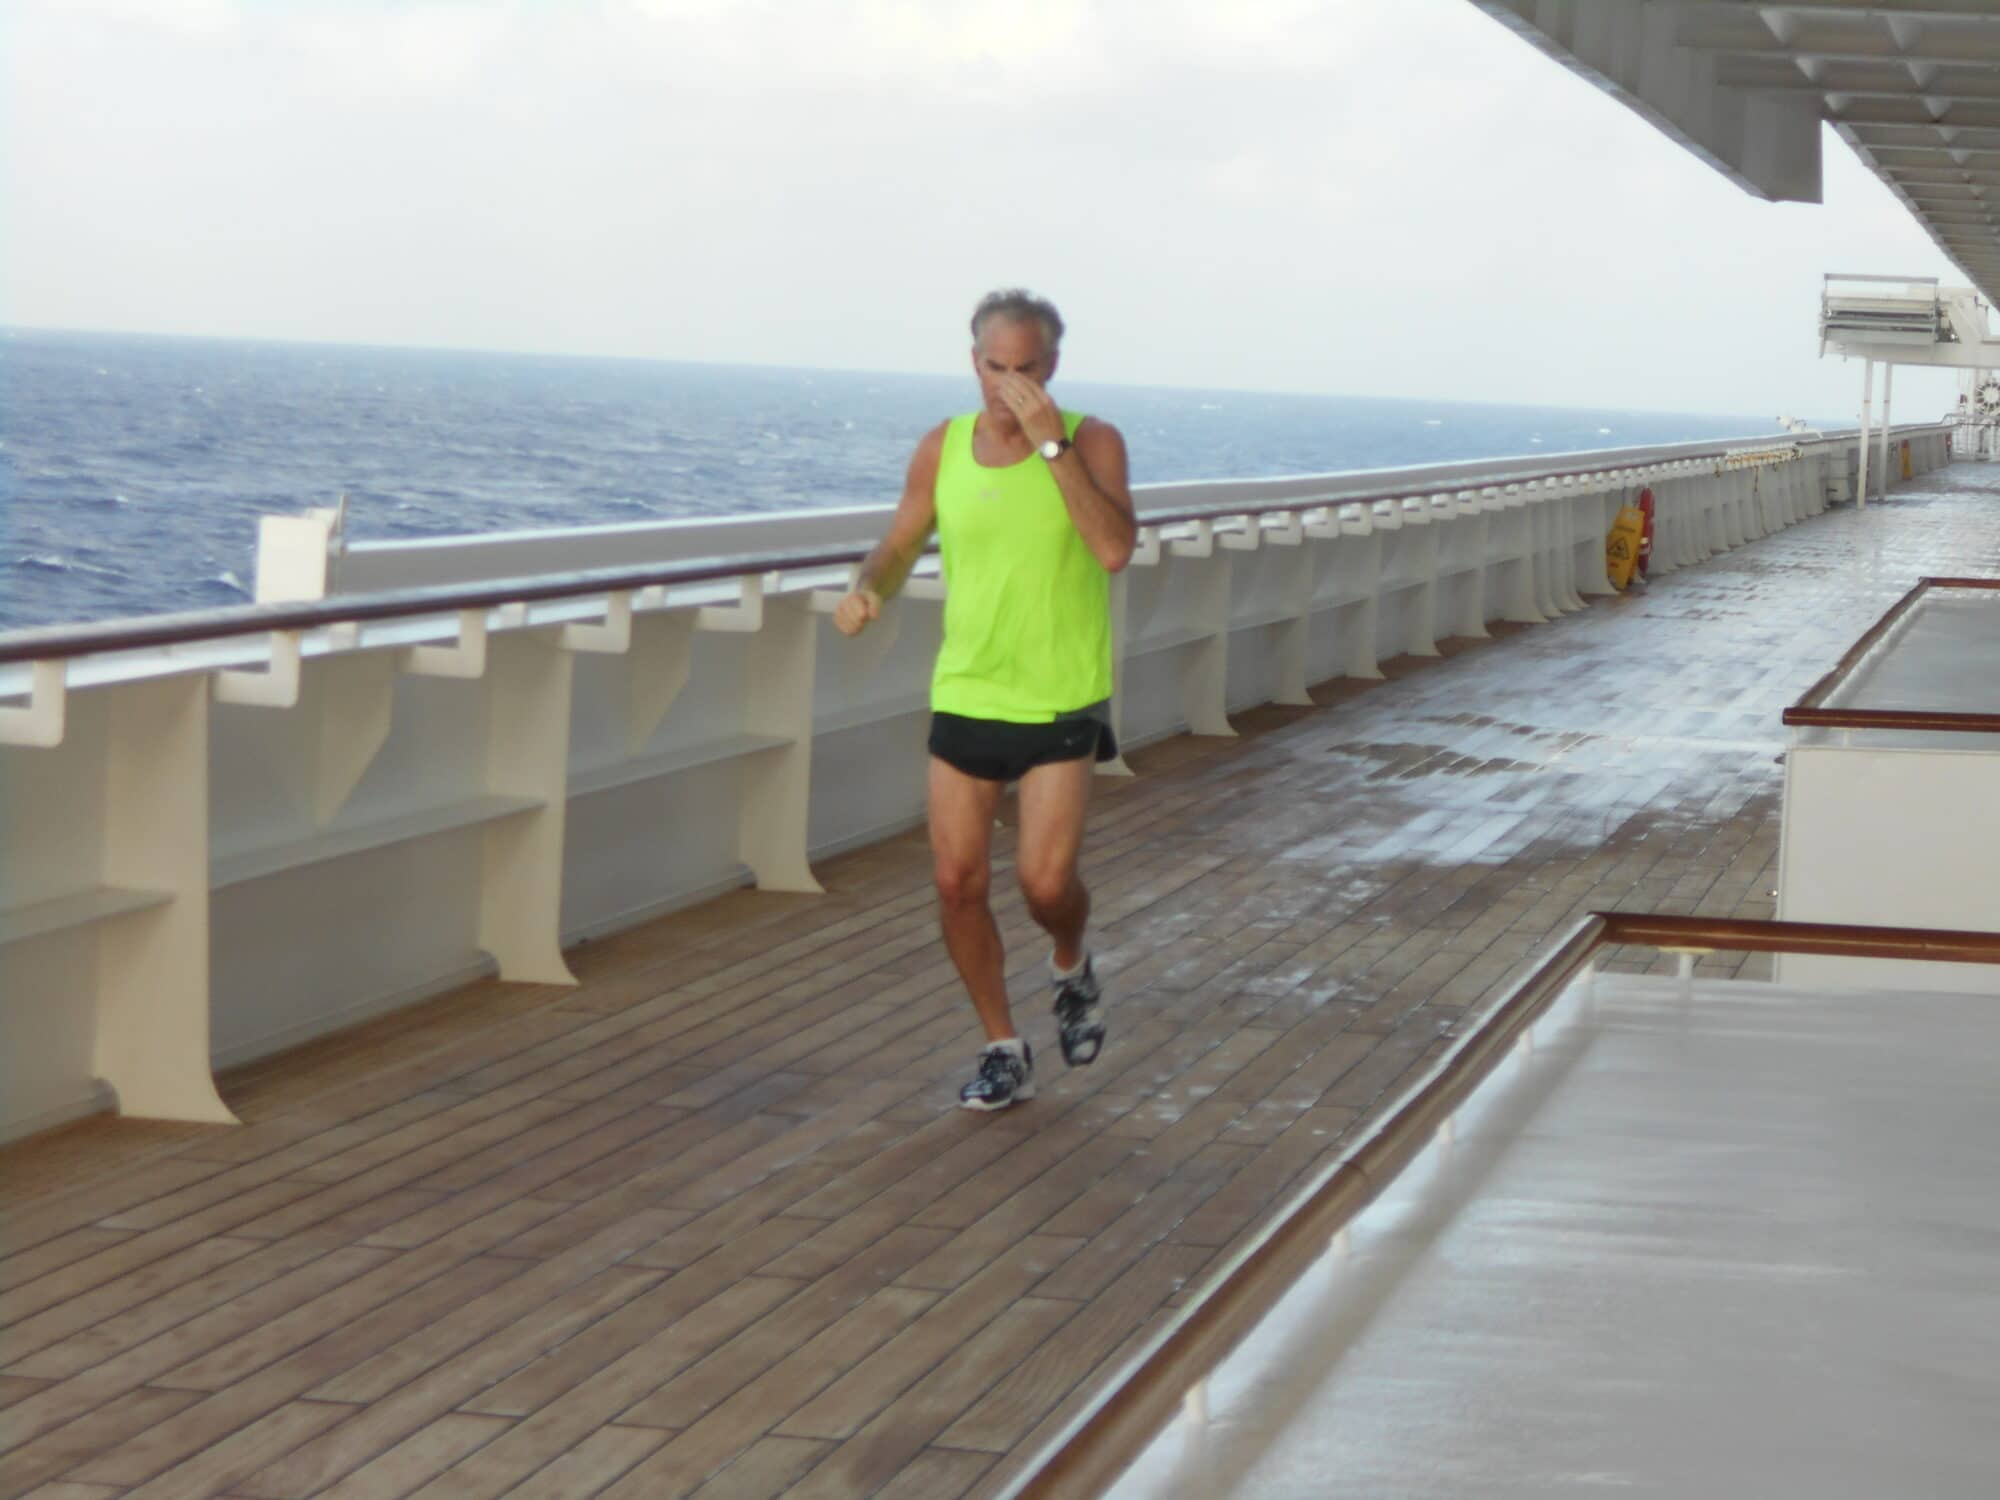 Easy to stay in shape on Crystal Symphony